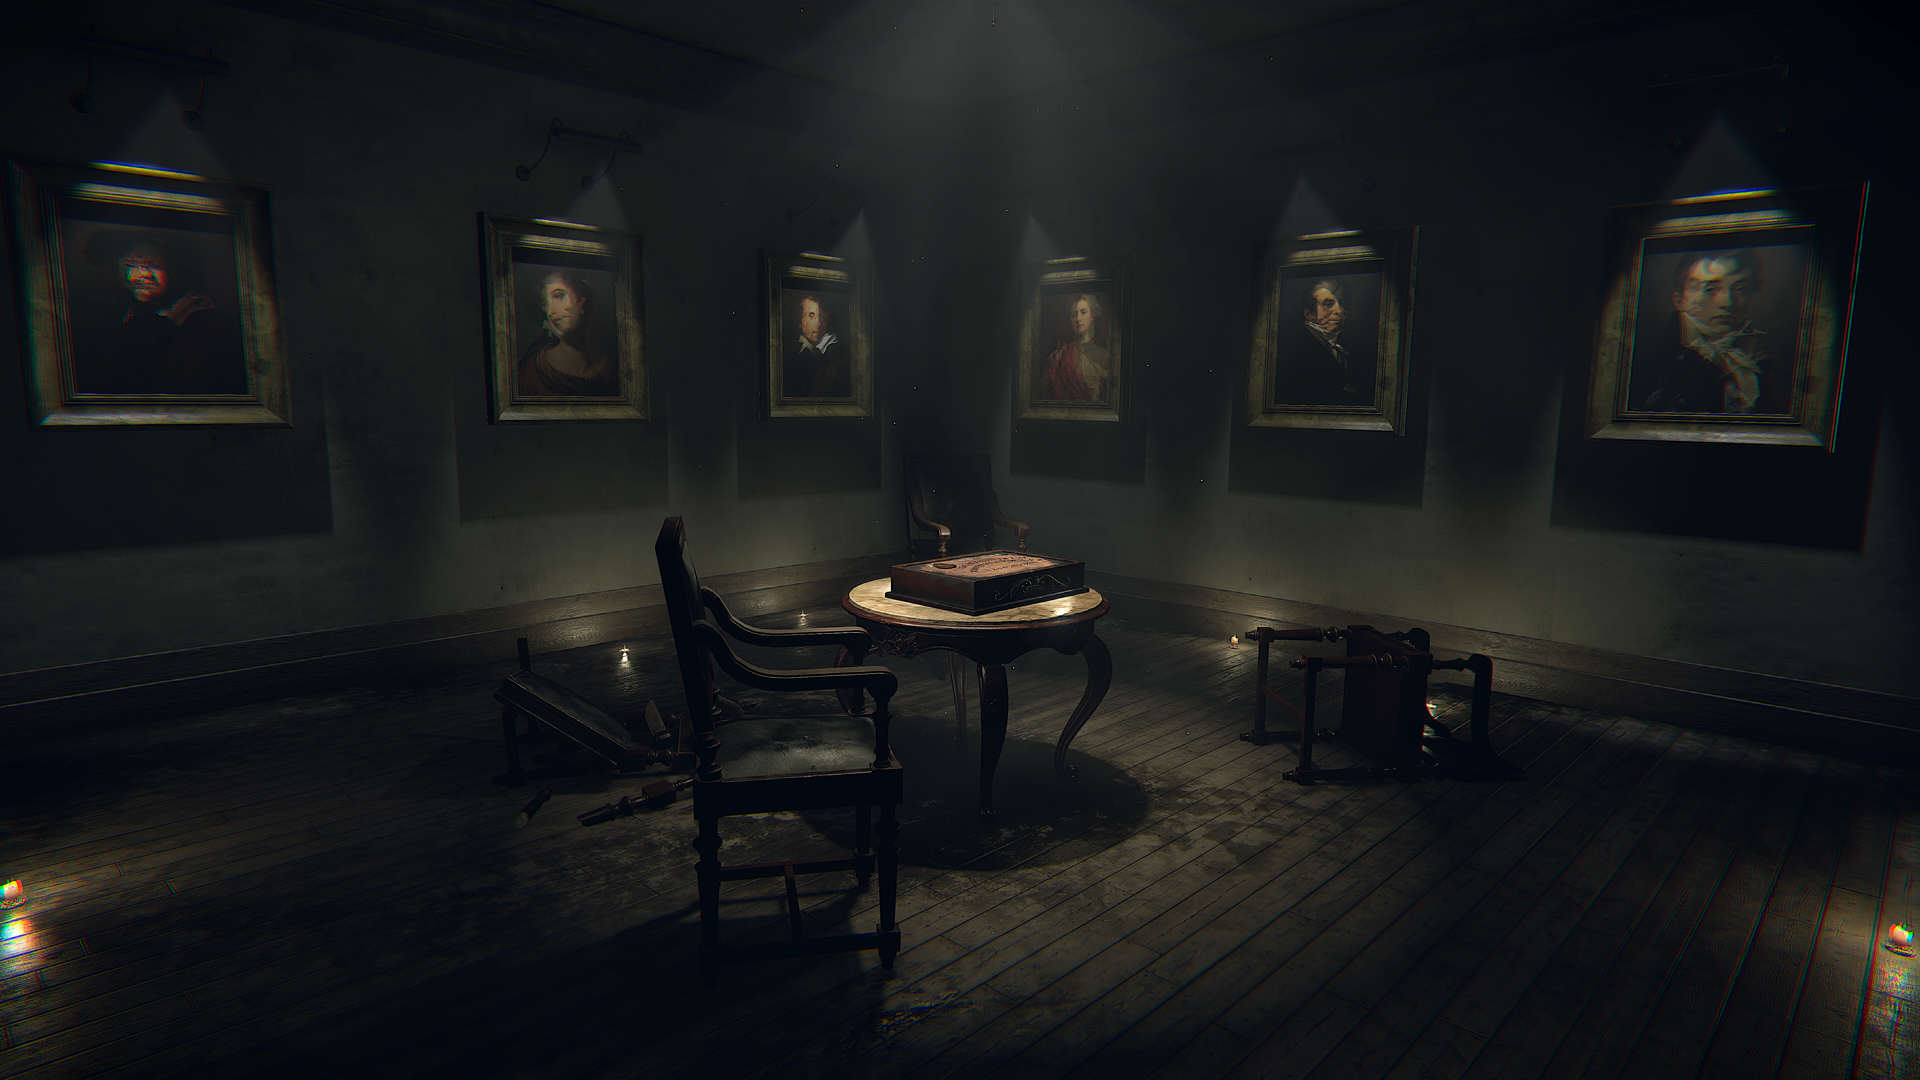 Layers Of Fear Is Isolating, Tense And Unashamedly Terrifying pu28dd2c7955ce926456240b2ff0100bde 1446046467 8479520 screenshot original